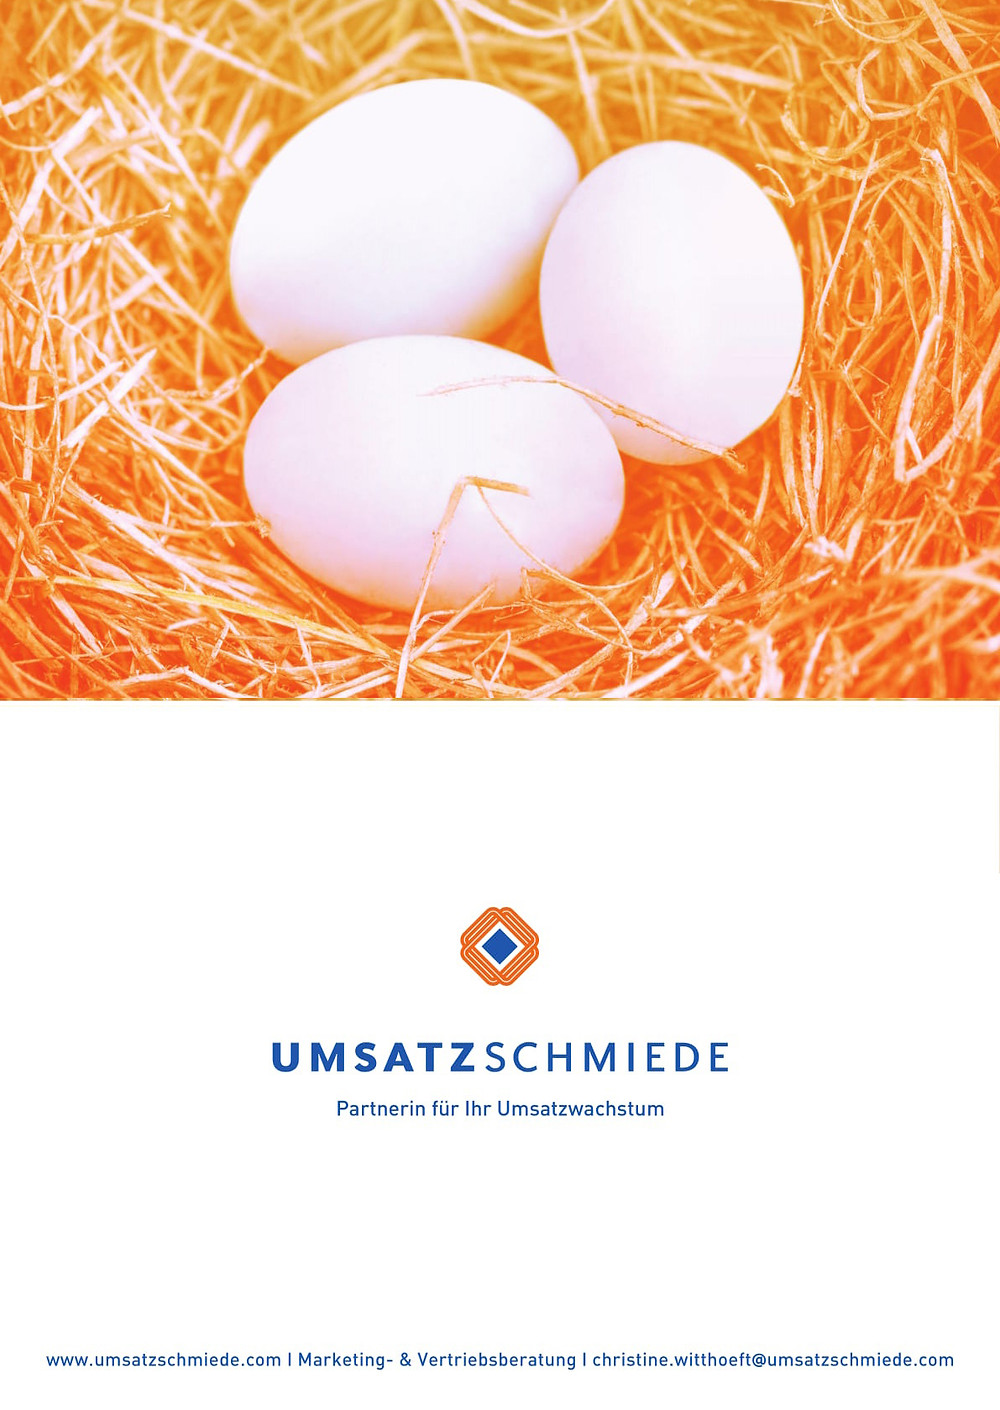 Ostern, Frühling, UMSATZSCHMIEDE, Marketing, Vertriebsberatung #digitalisierung #arbeitgebermarketing, Startup, Coaching, Hamburg, Berlin, Strategieworkshop